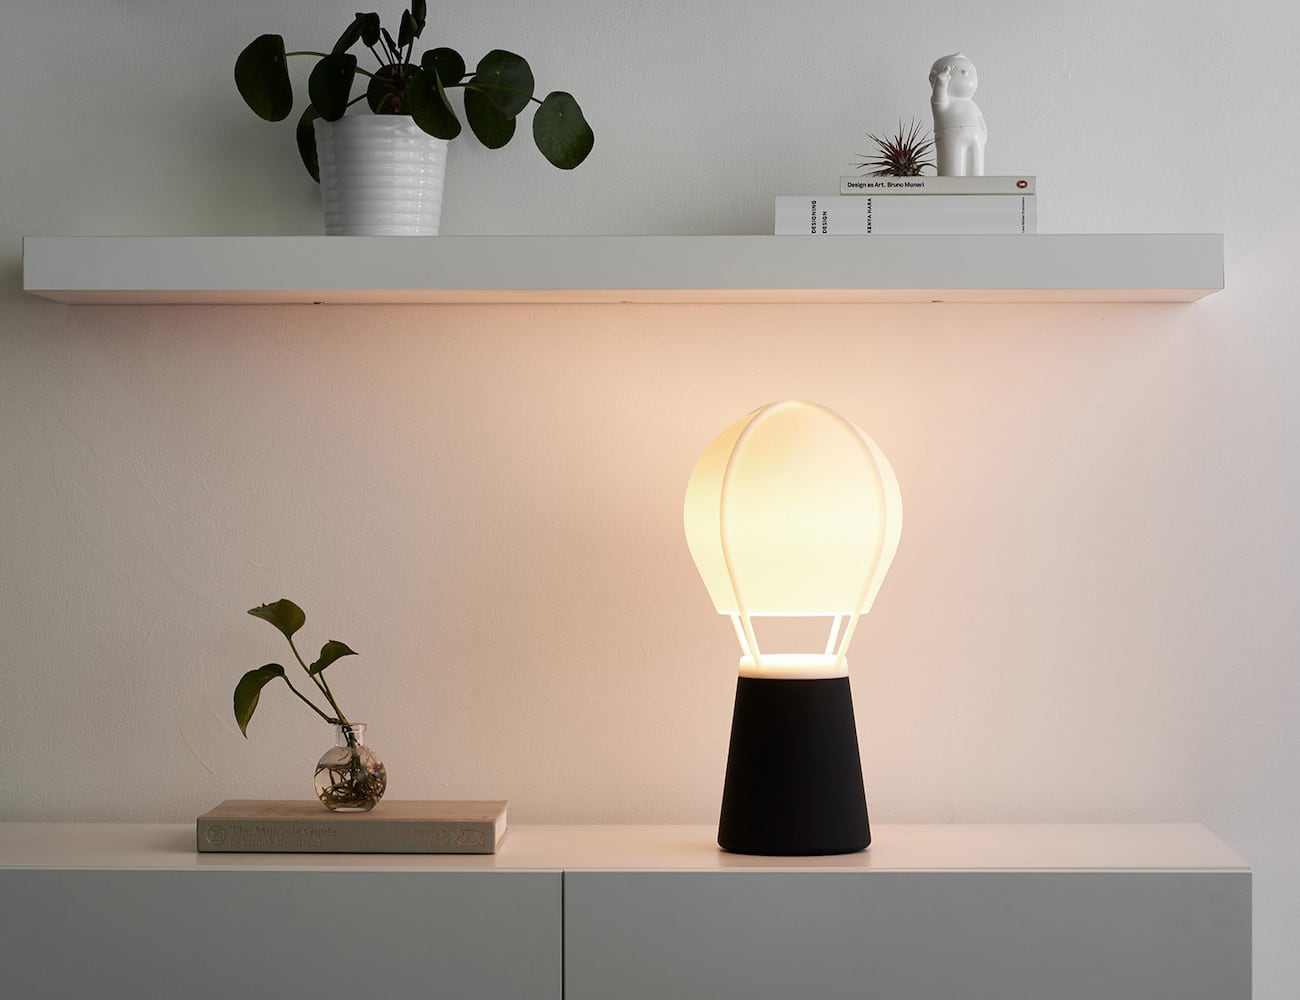 Baló by MOAK Hot Air Balloon Light makes the bulb look like a flame